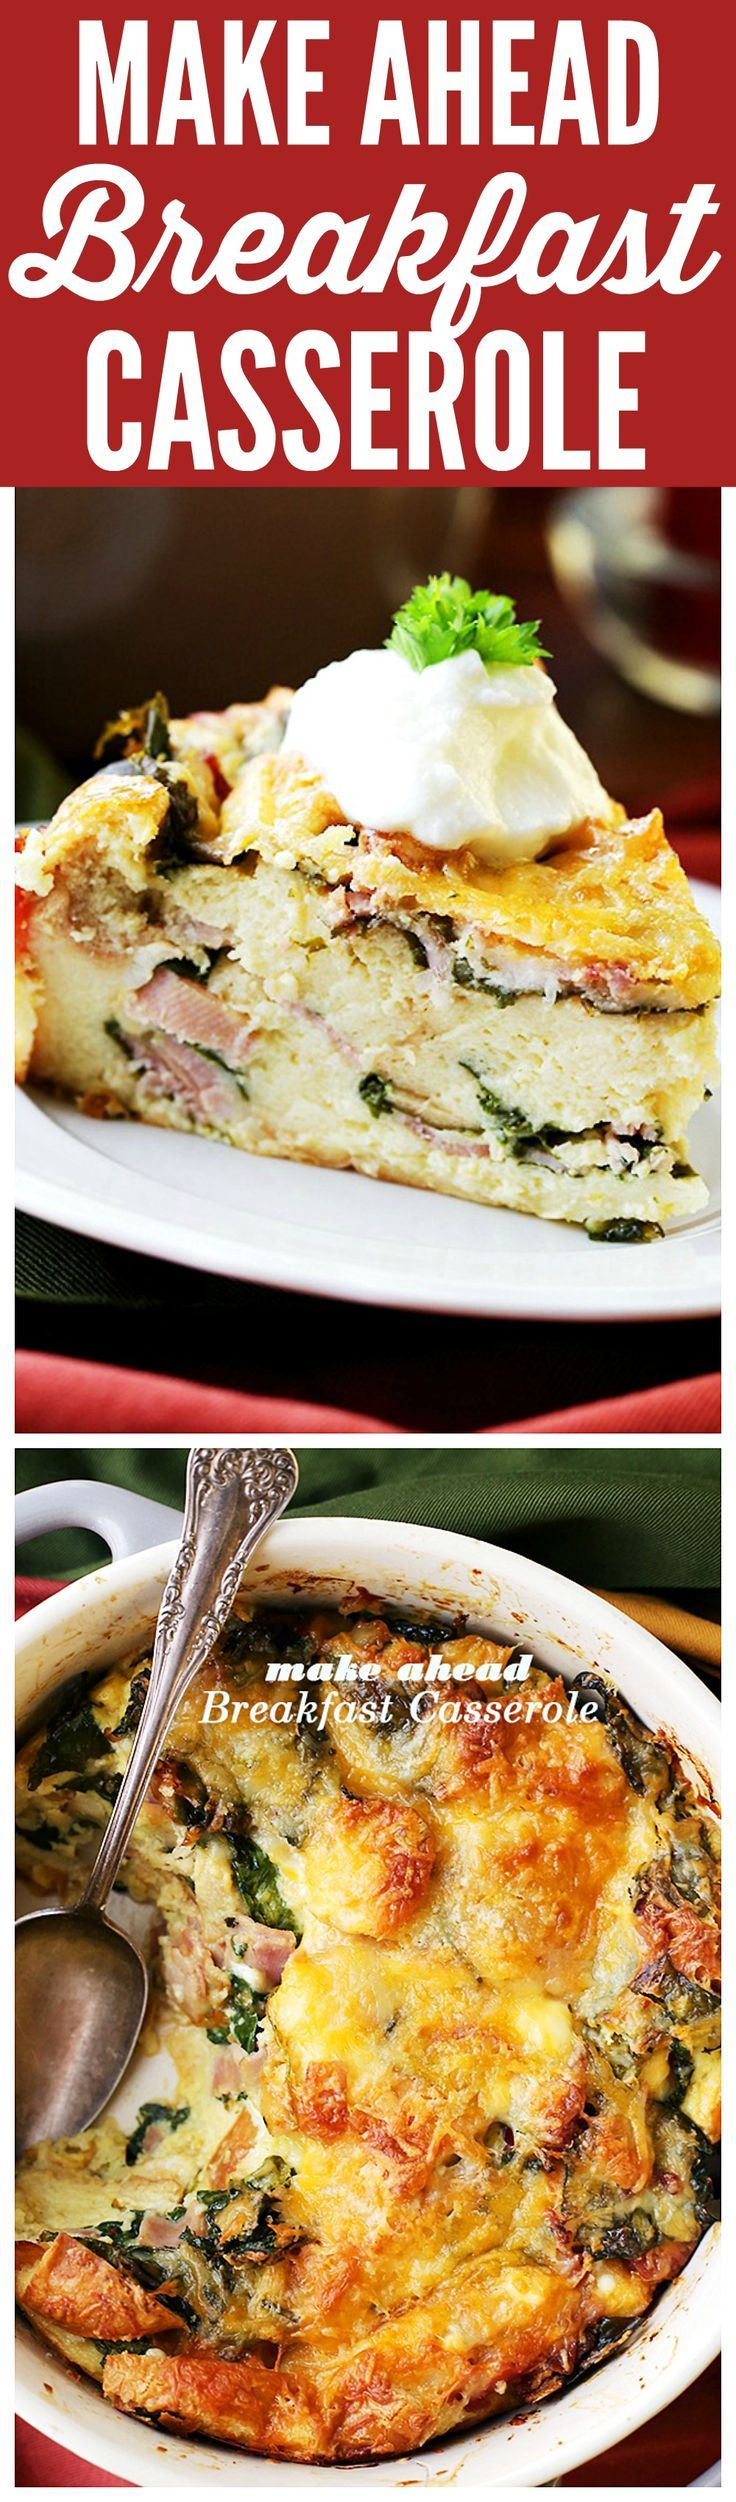 Make Ahead Breakfast Casserole - Easy to prepare, make ahead breakfast casserole chock full of hearty bacon, ham, cheeses and spinach. Prepare this the night before Christmas, and just pop it in the oven in the morning. Warm, cheesy and delicious!